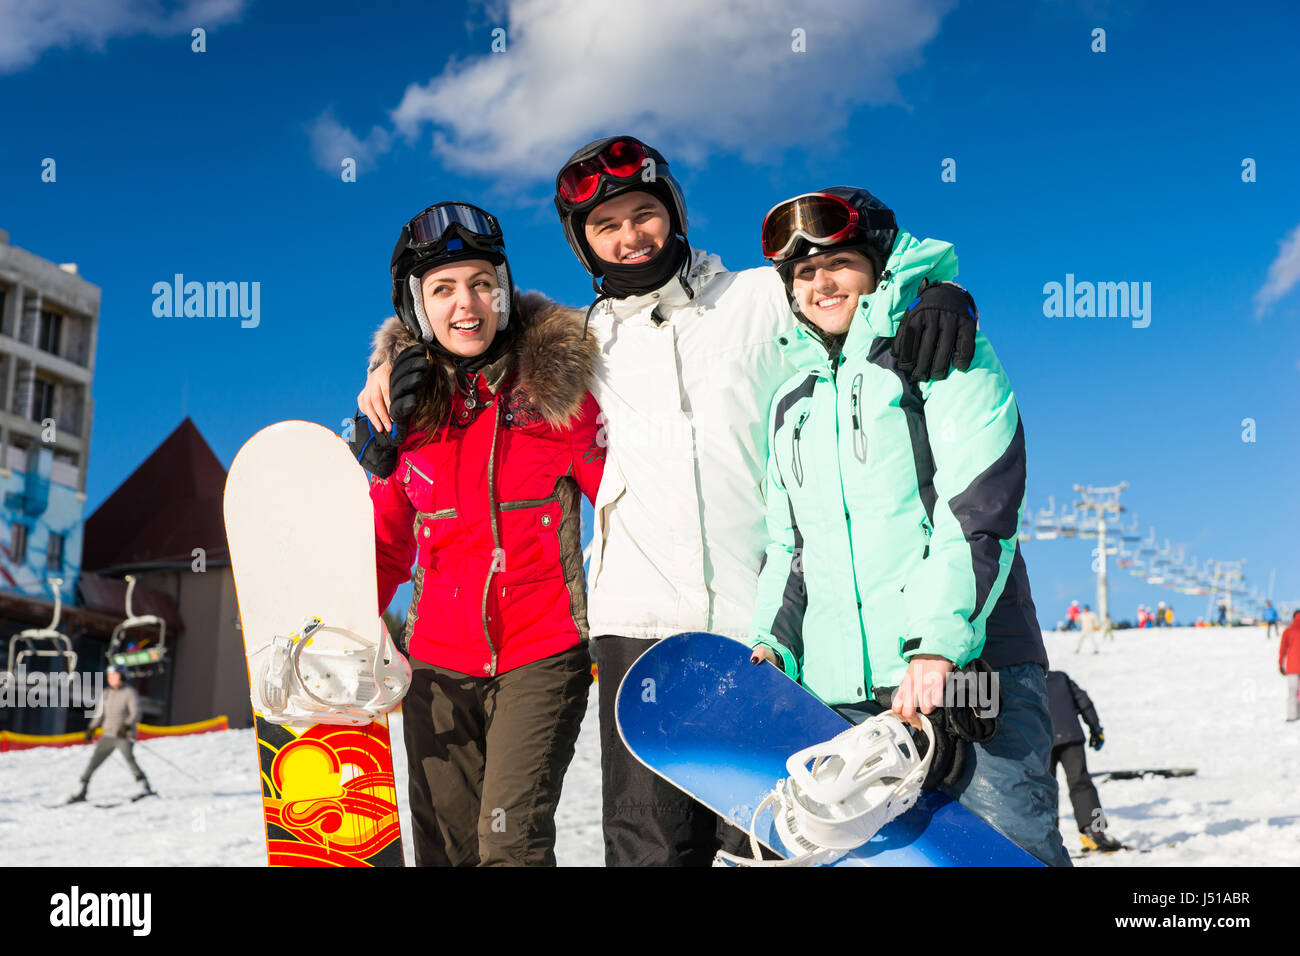 Youth in ski-suits and ski goggles having fun while standing with snowboards in a ski-resort in winter period - Stock Image